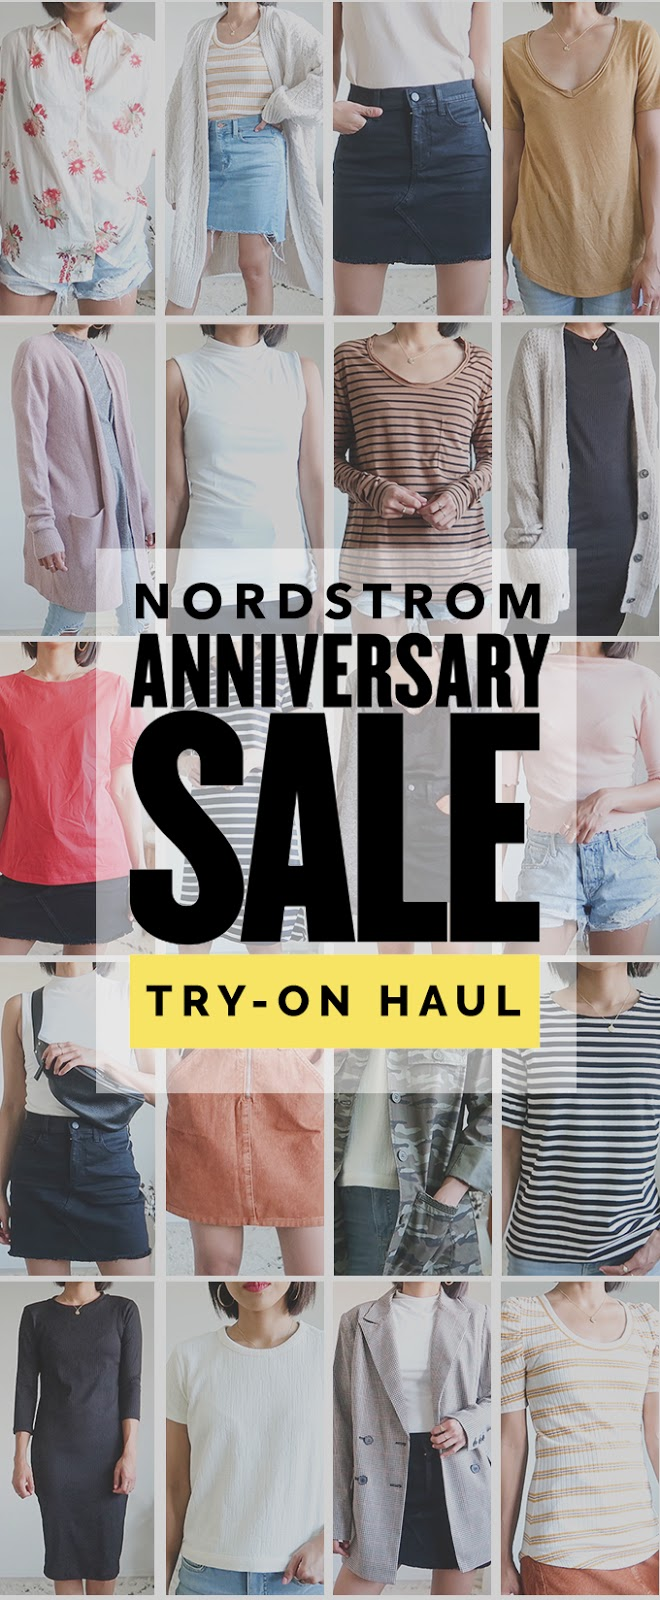 d4203a627b00 Nordstrom Anniversary Sale Try-On Haul for Petites | beautybitten ...